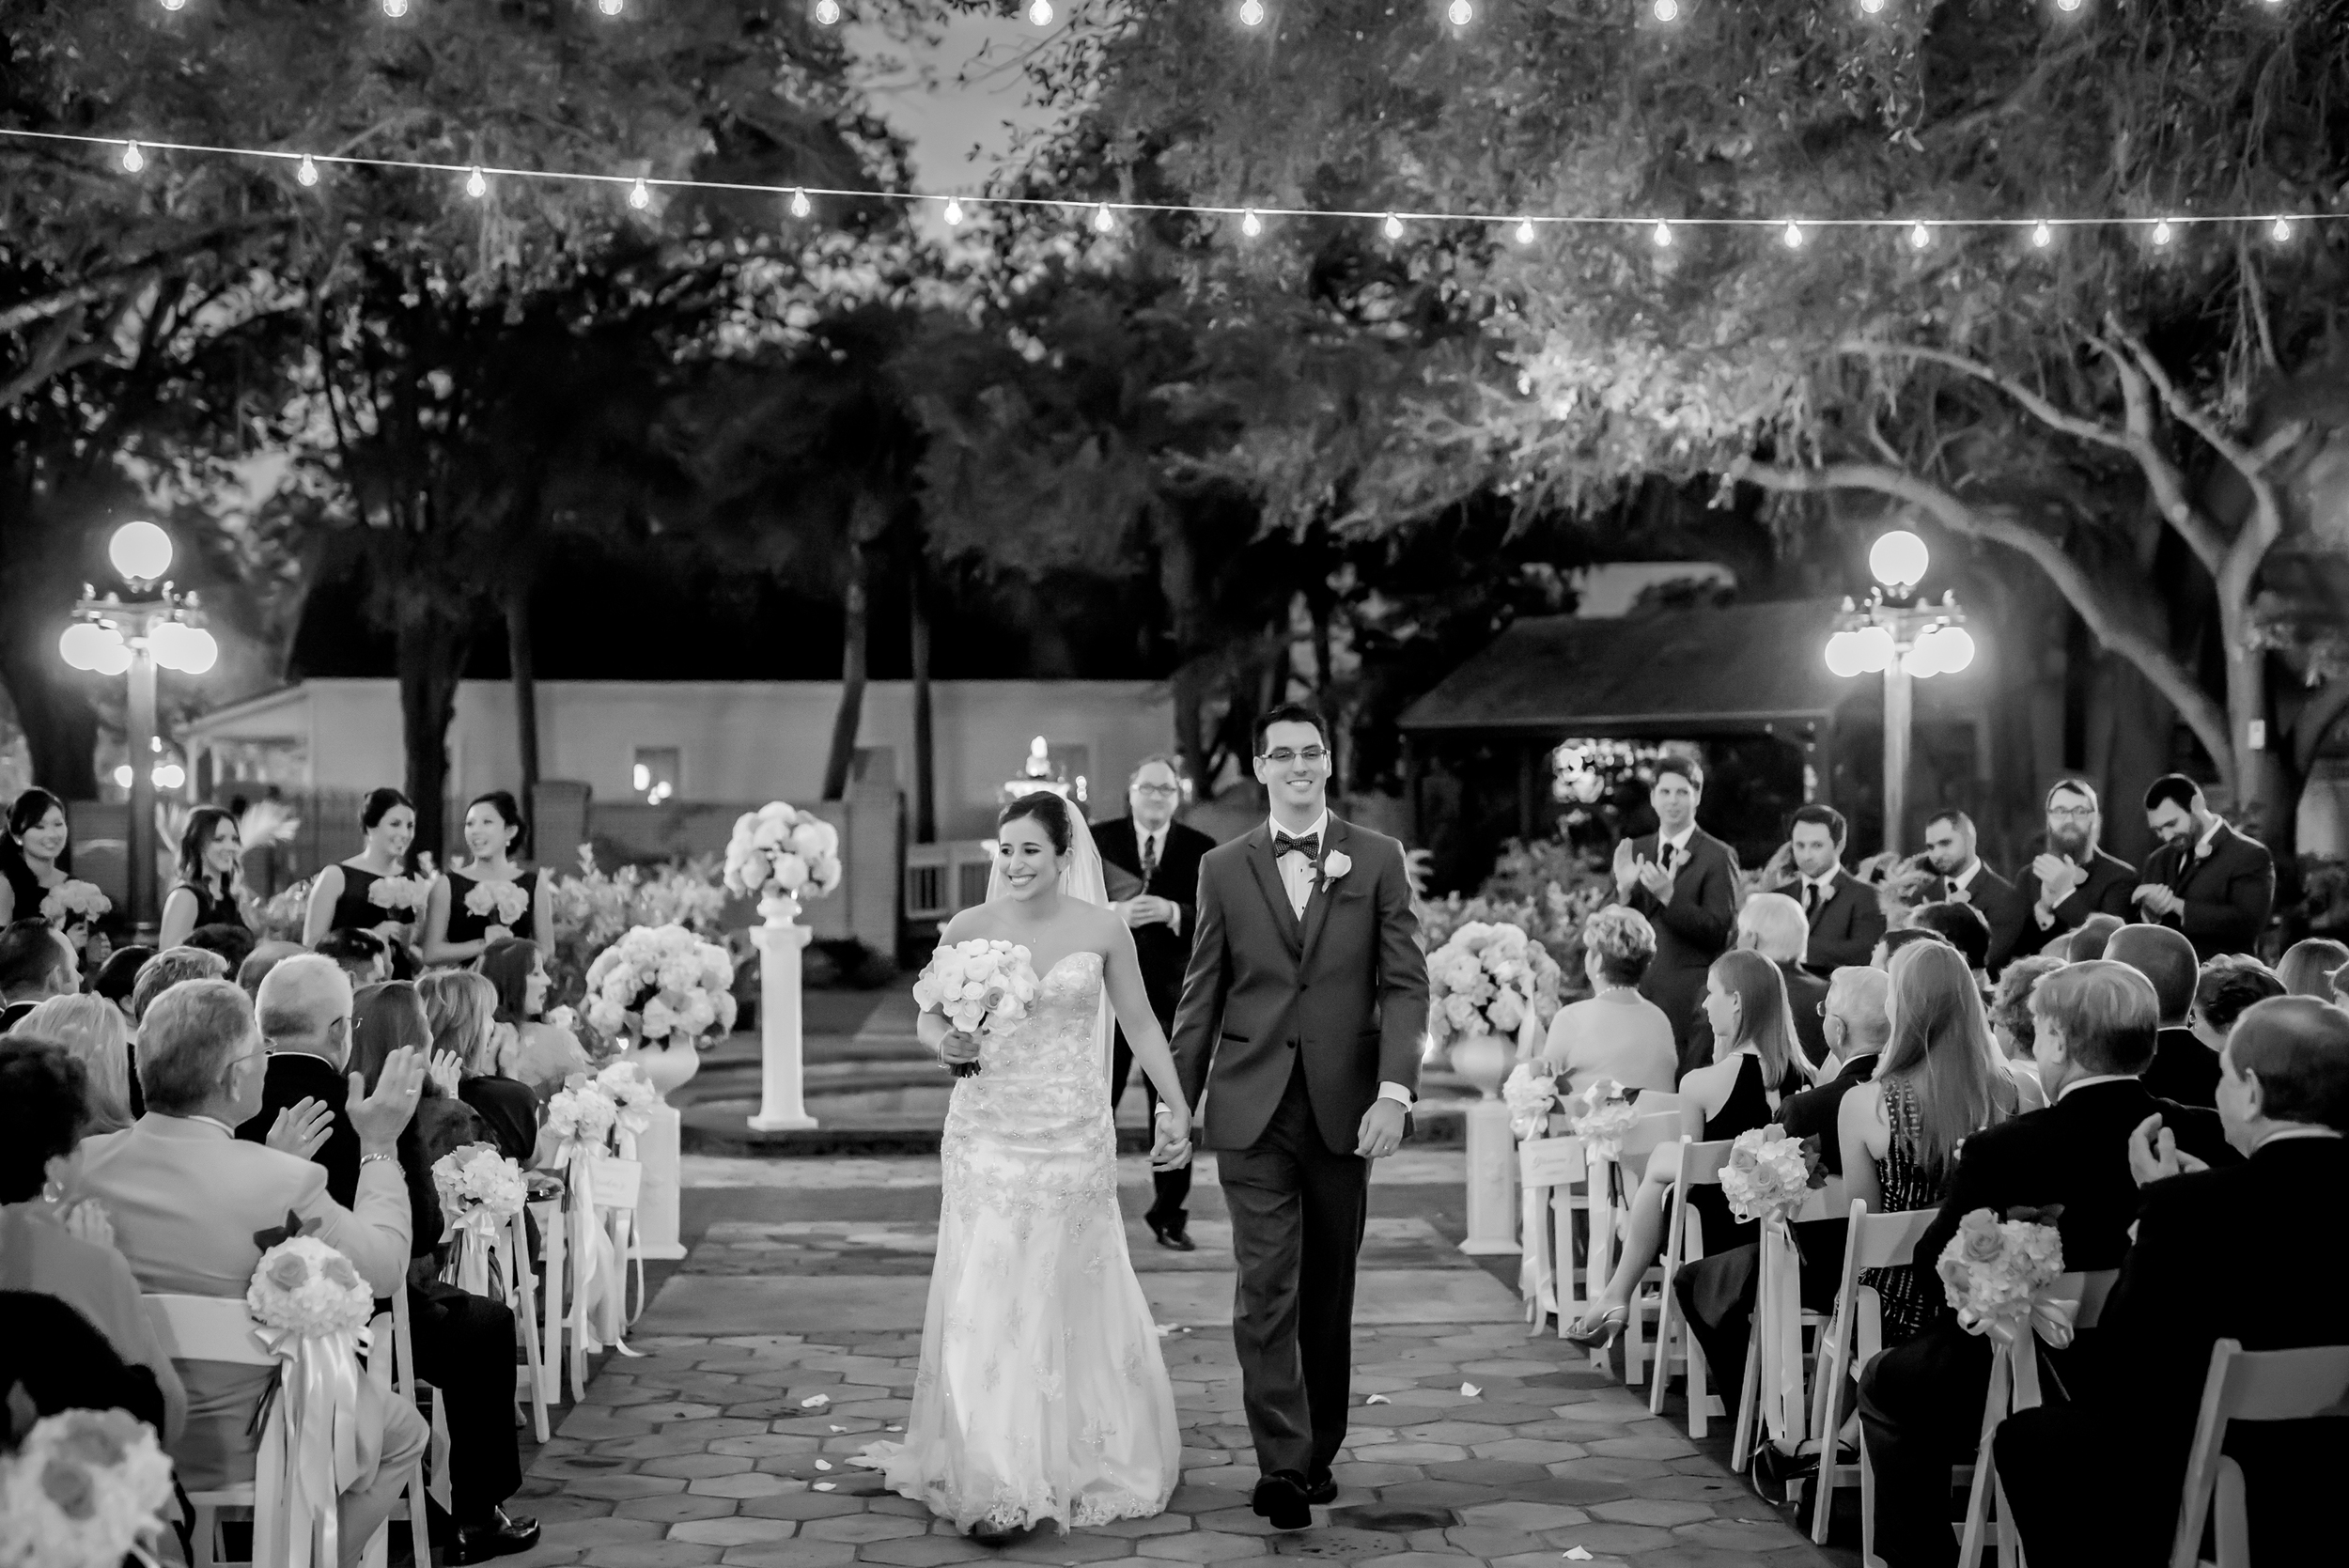 In November we had to start dealing with a sunset time of 5:30 :( But it actually made for a gorgeous ceremony under the market lights for Alexa and Chris in Ybor.